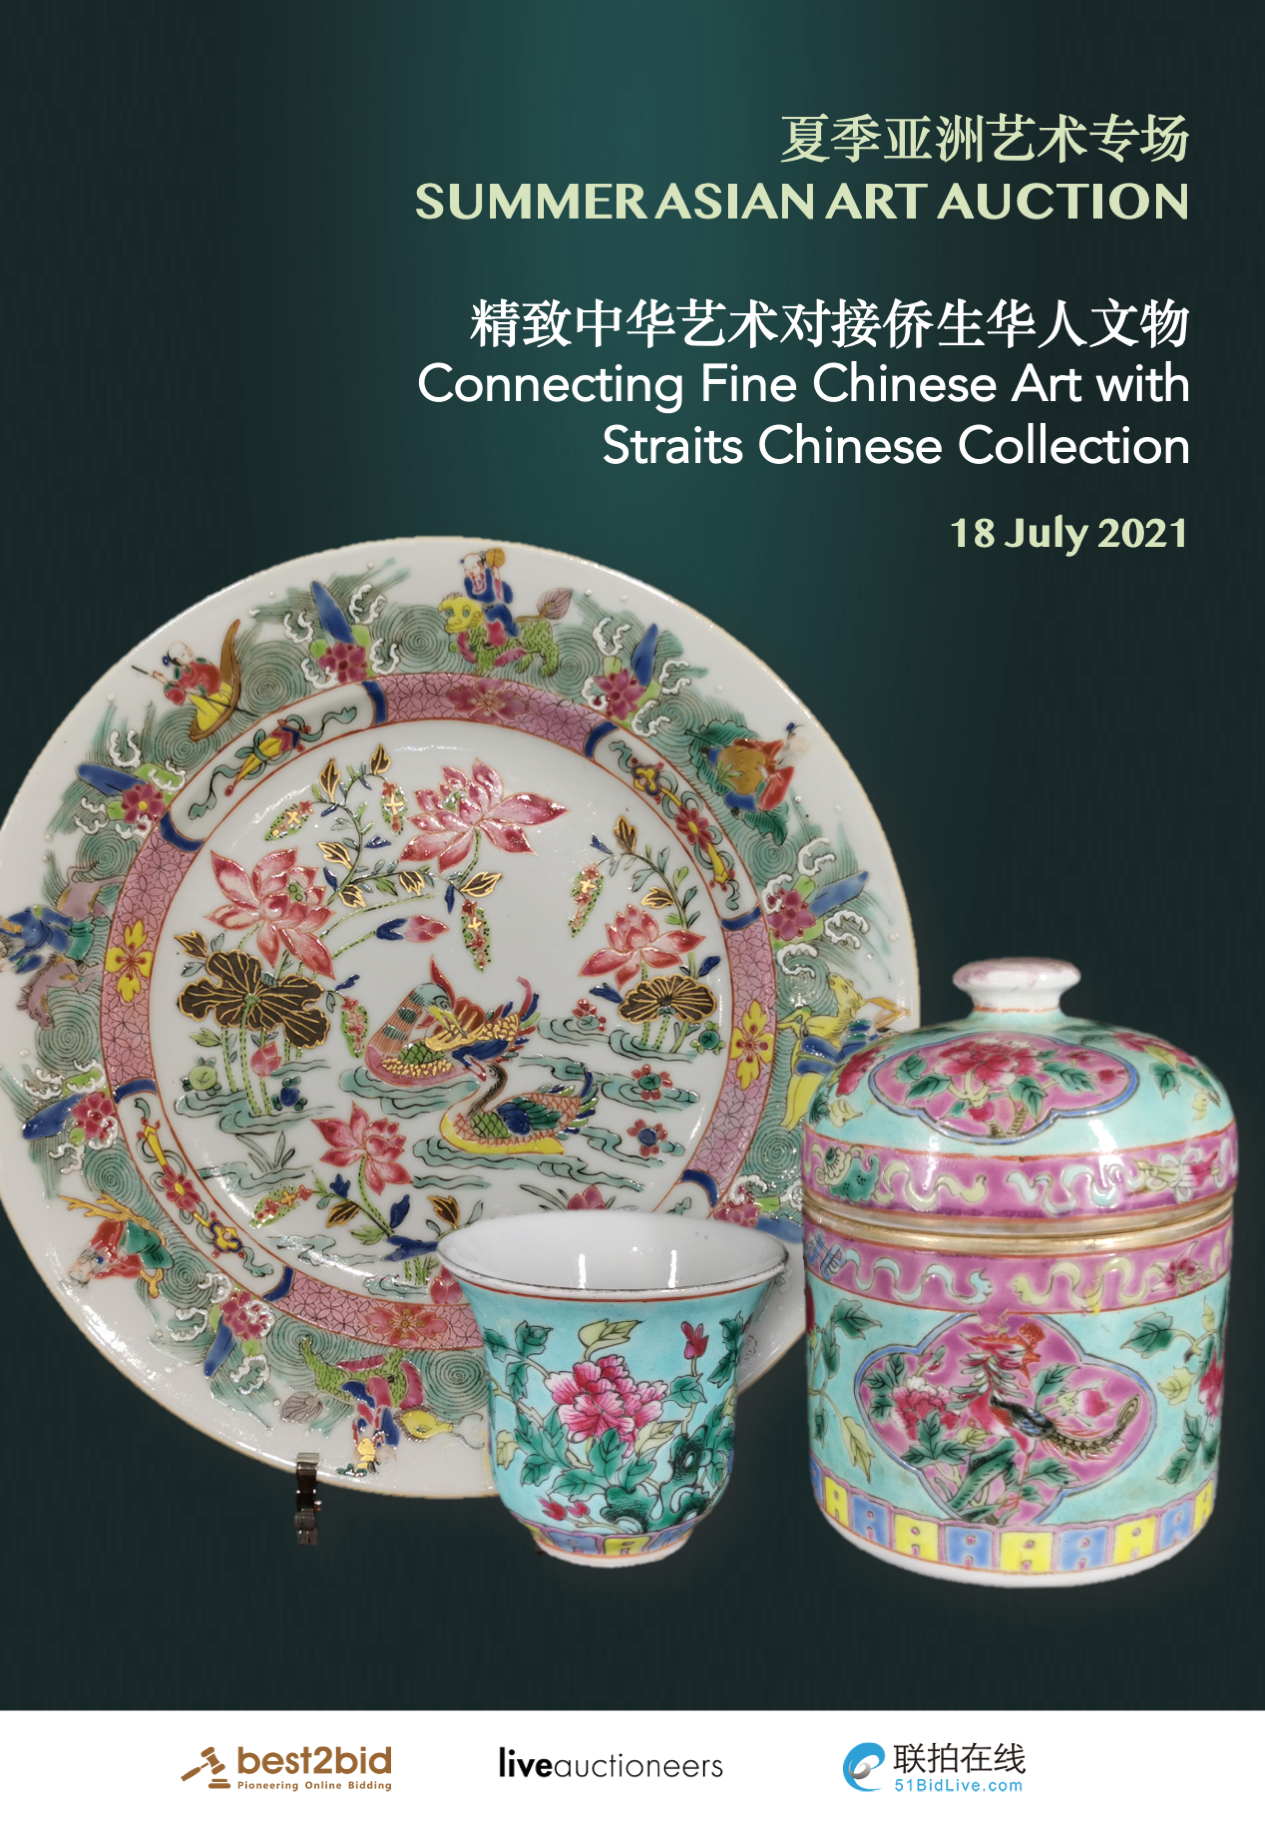 Summer Asian Art Auction - Connecting Fine Chinese Art with Straits Chinese Collection Catalogue Cover